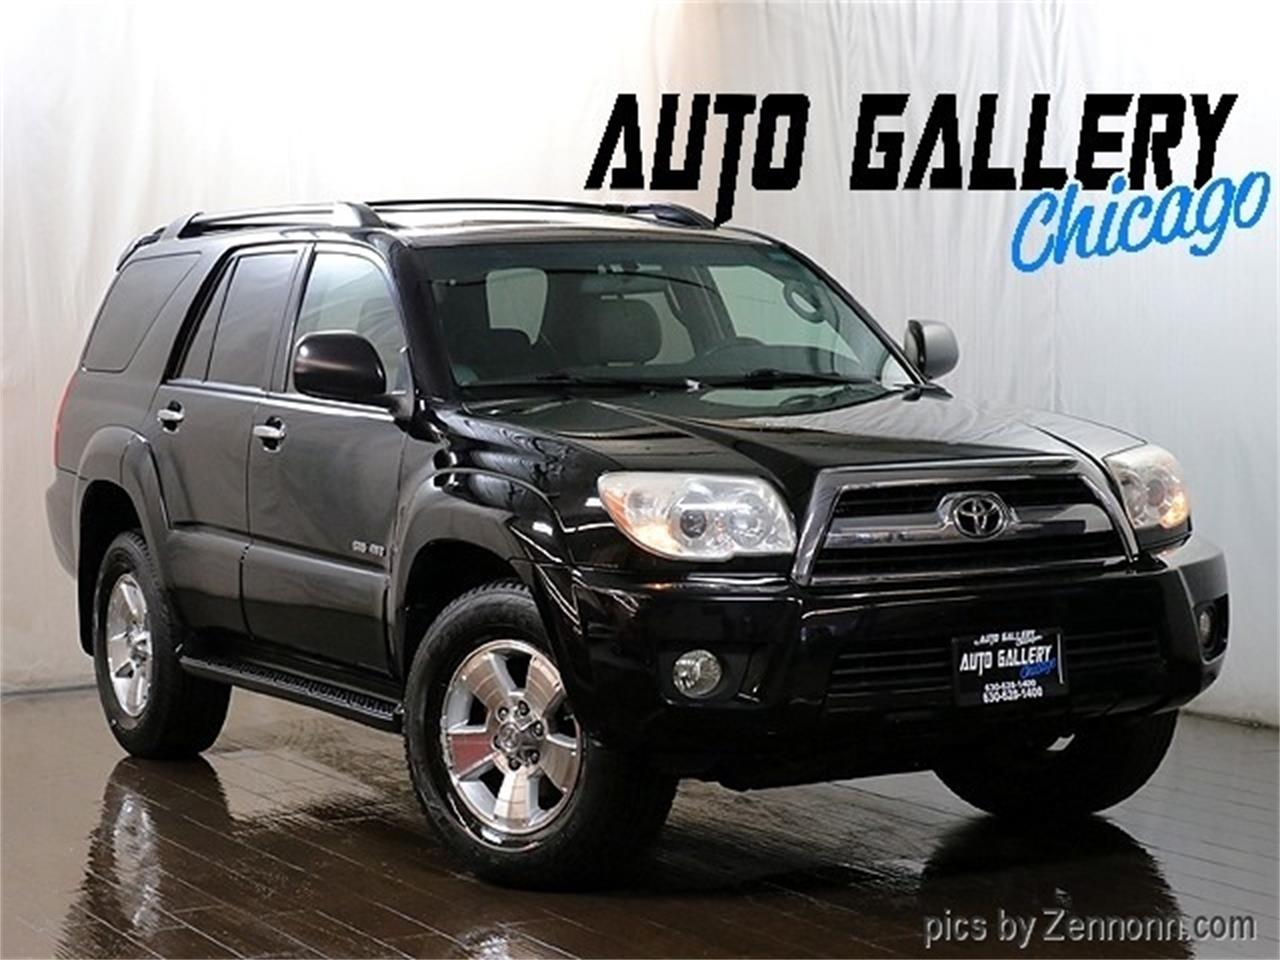 for sale 2007 toyota 4runner in addison, illinois cars - addison, il at geebo